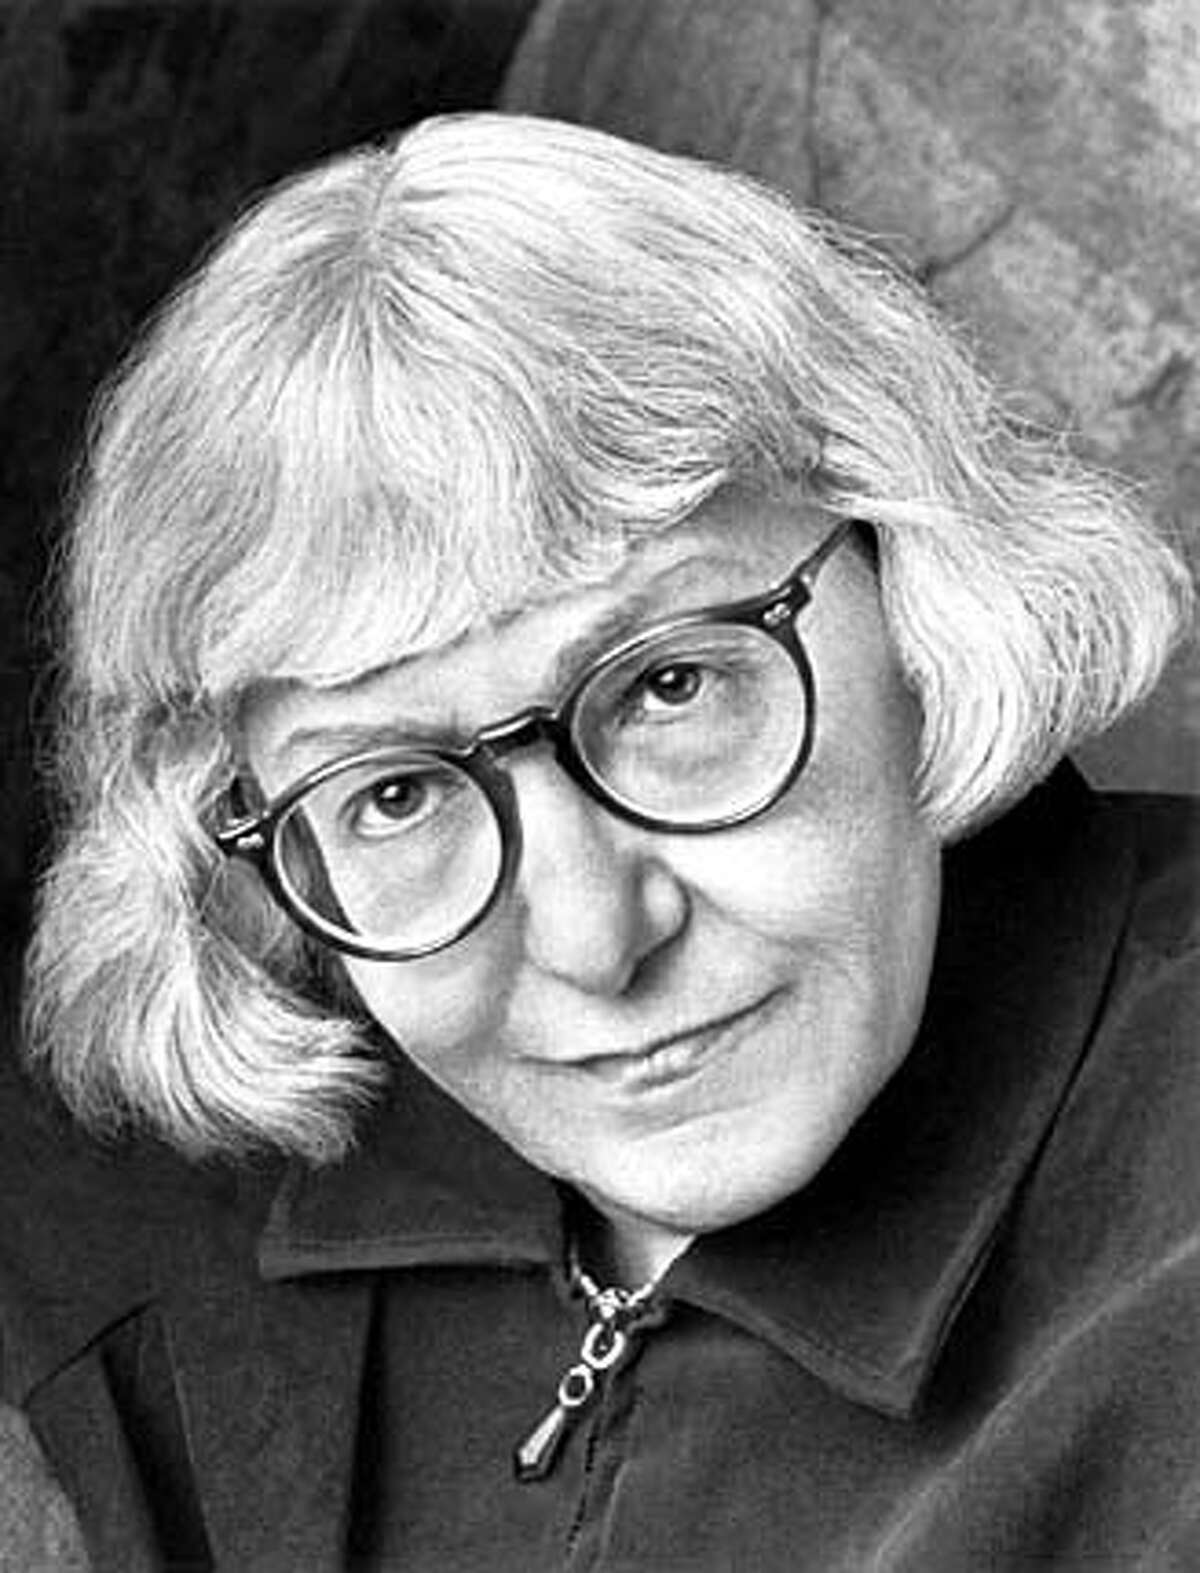 Heir05.JPG Author Cynthia Ozick / HANDOUT BookReview#BookReview#Chronicle#09-05-2004#ALL##M2#0422305170